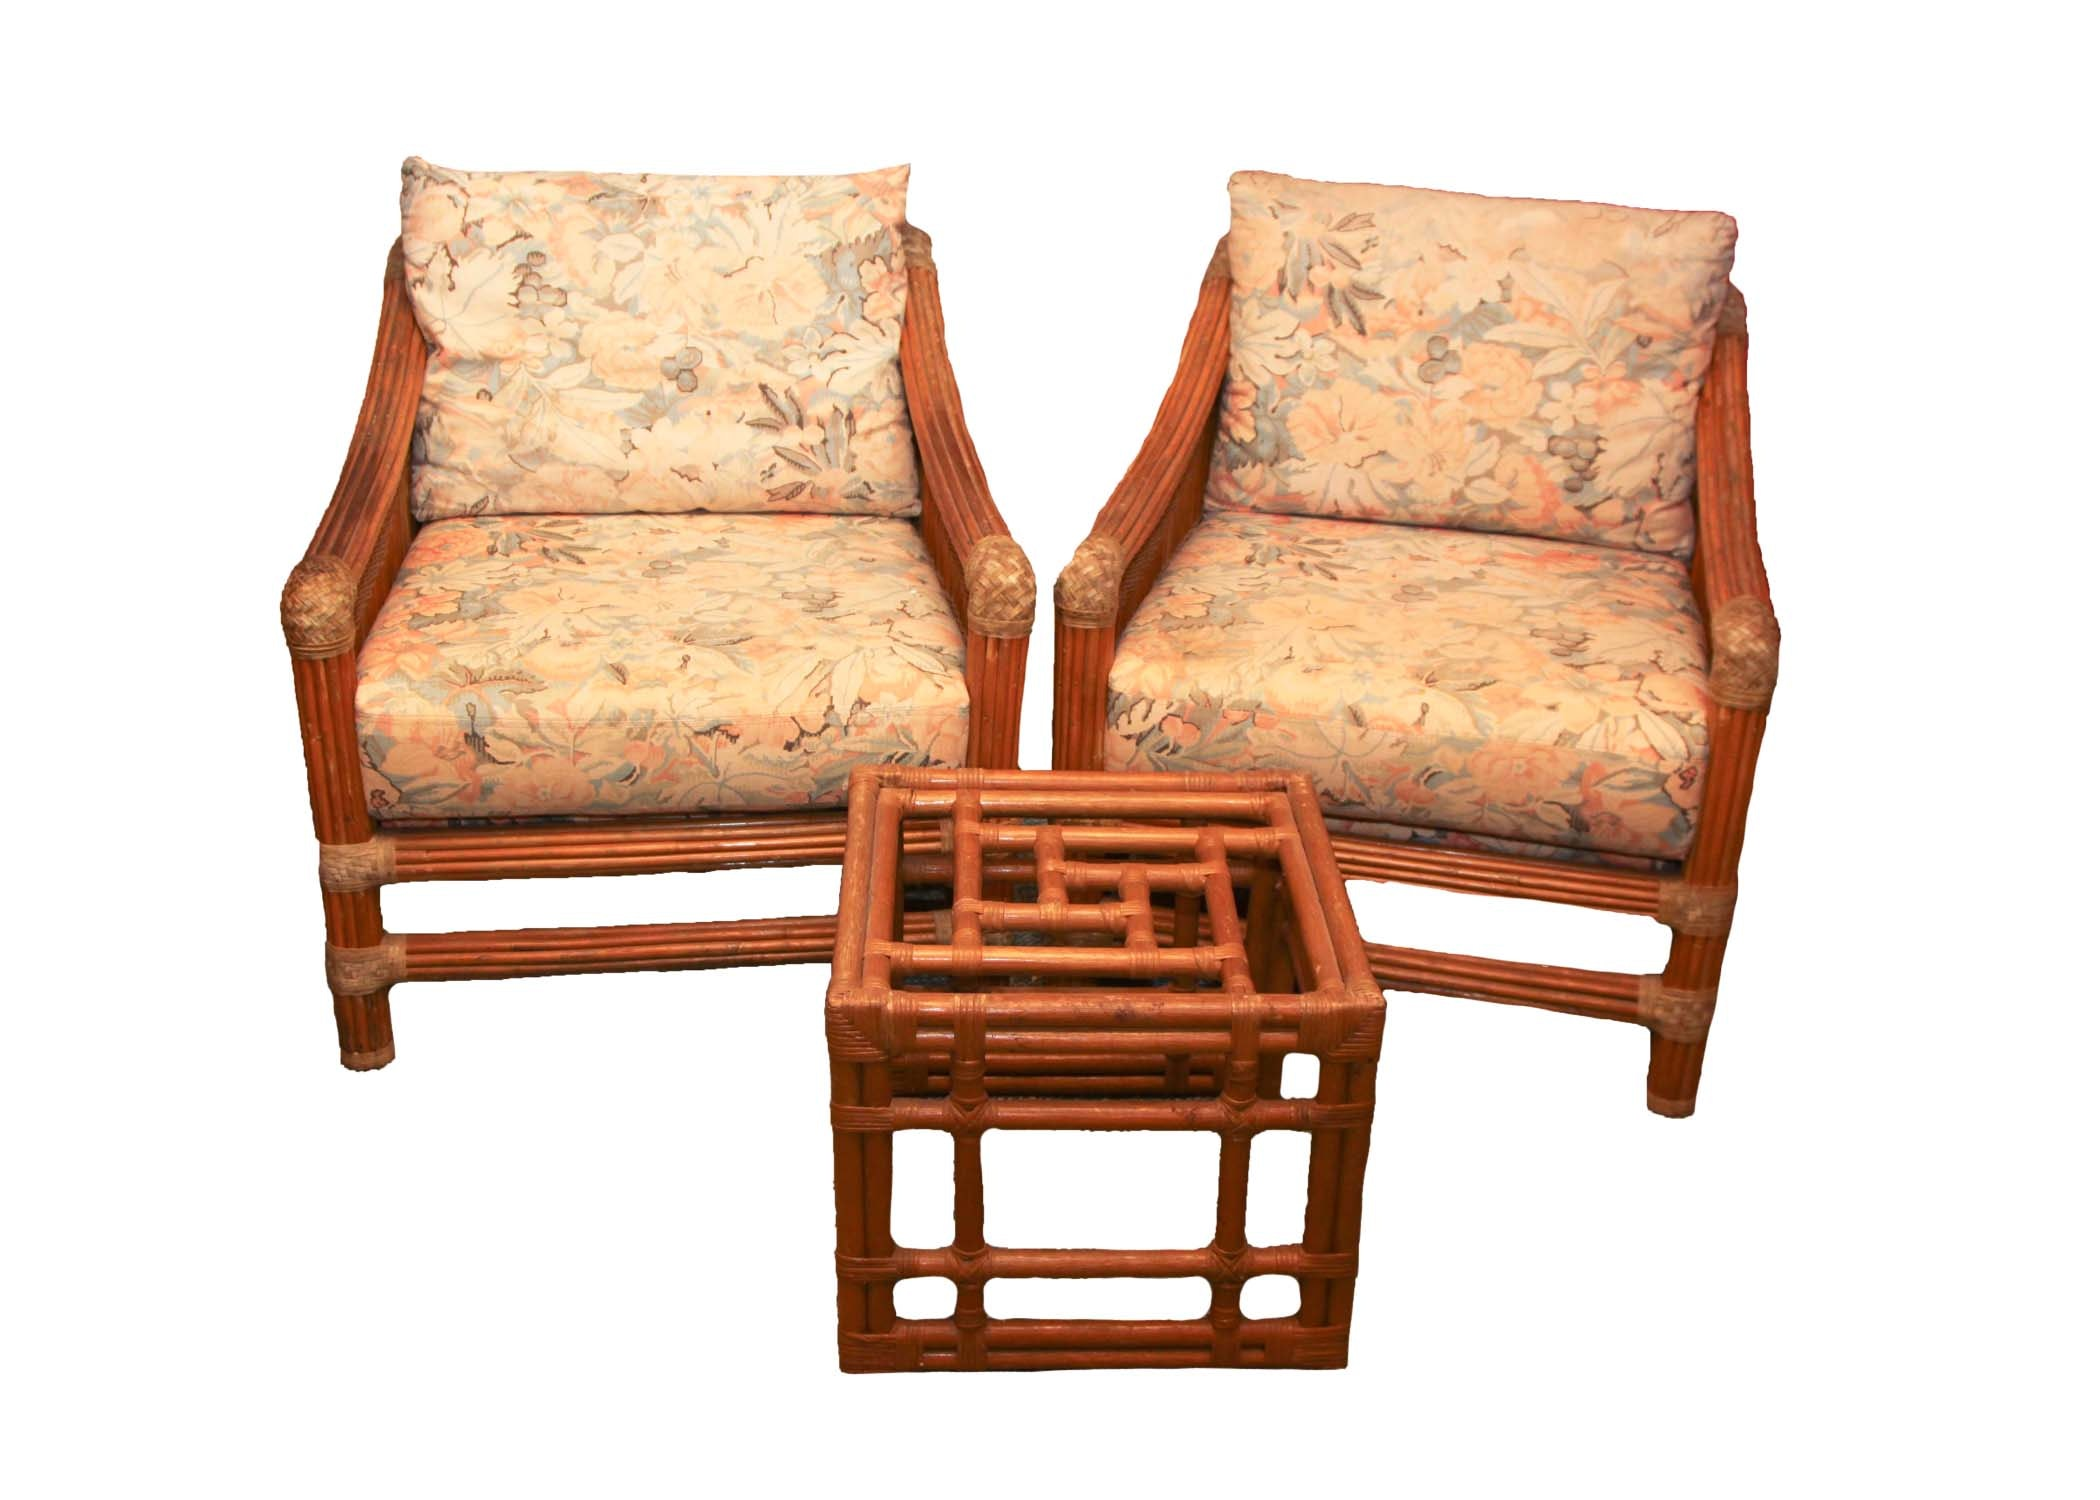 Vintage Rattan Armchairs and Side Table